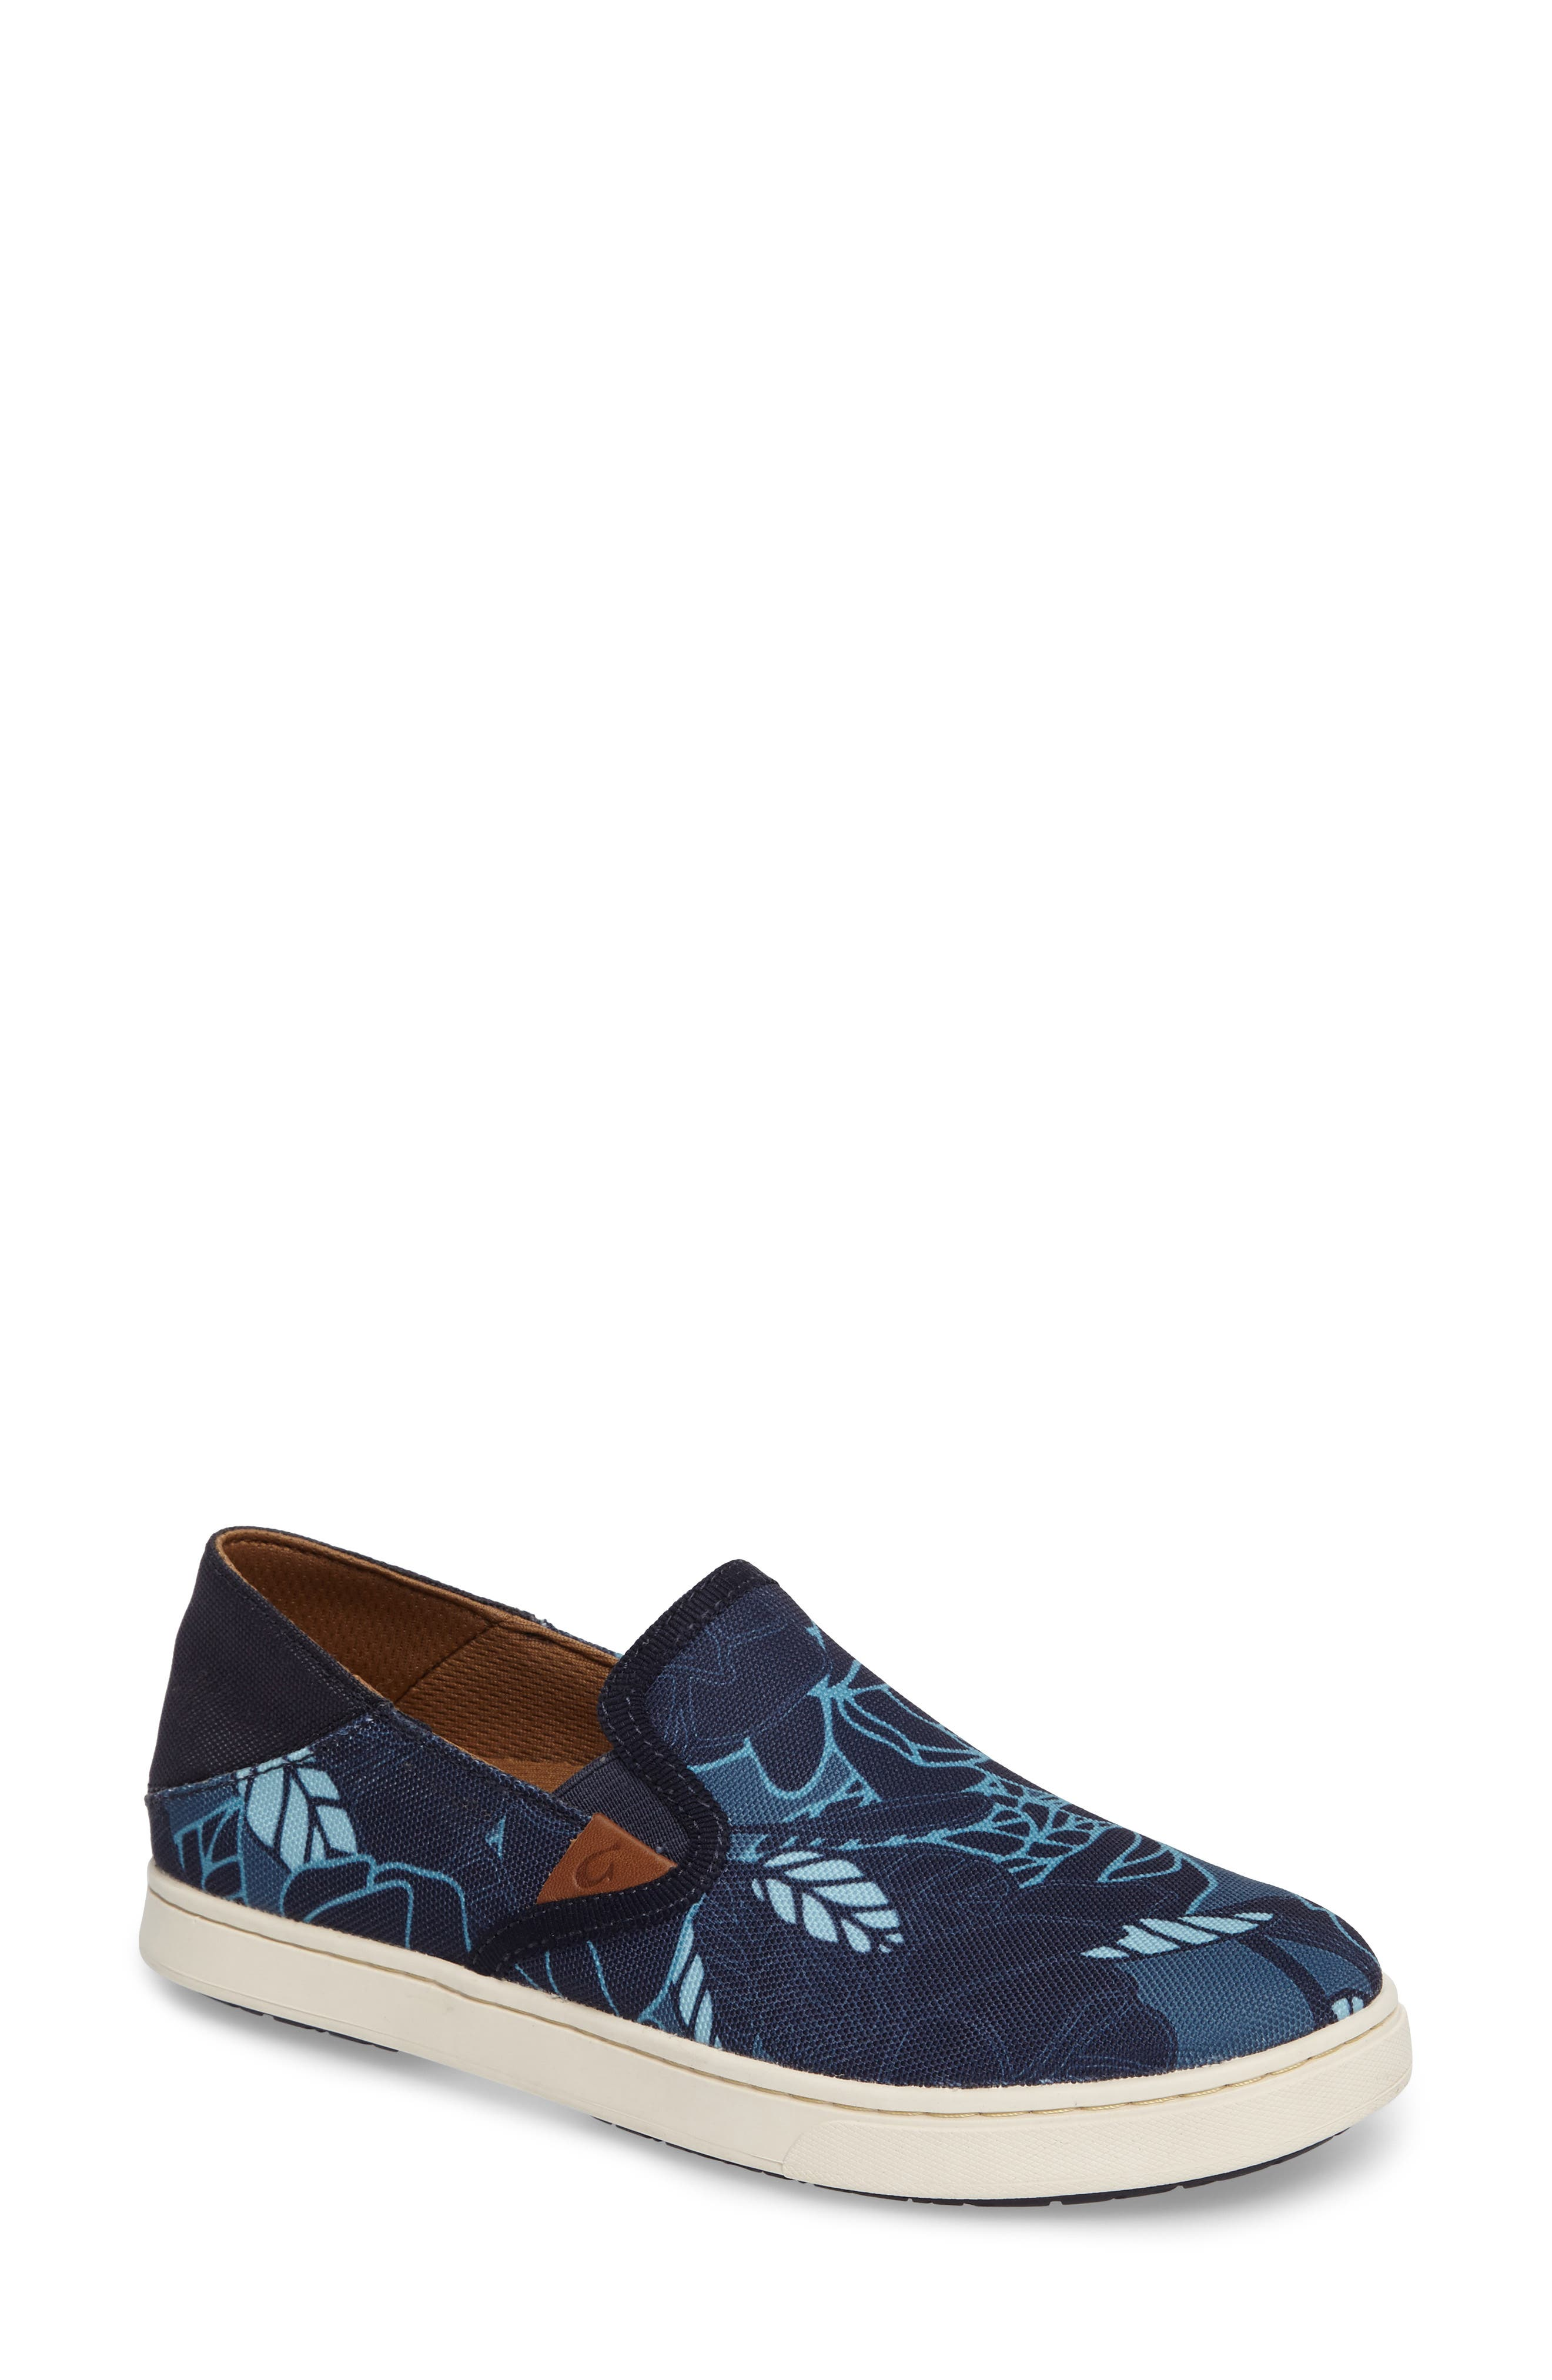 Pehuea Print Slip-On Sneaker,                             Main thumbnail 1, color,                             TRENCH BLUE/ STORMY BLUE